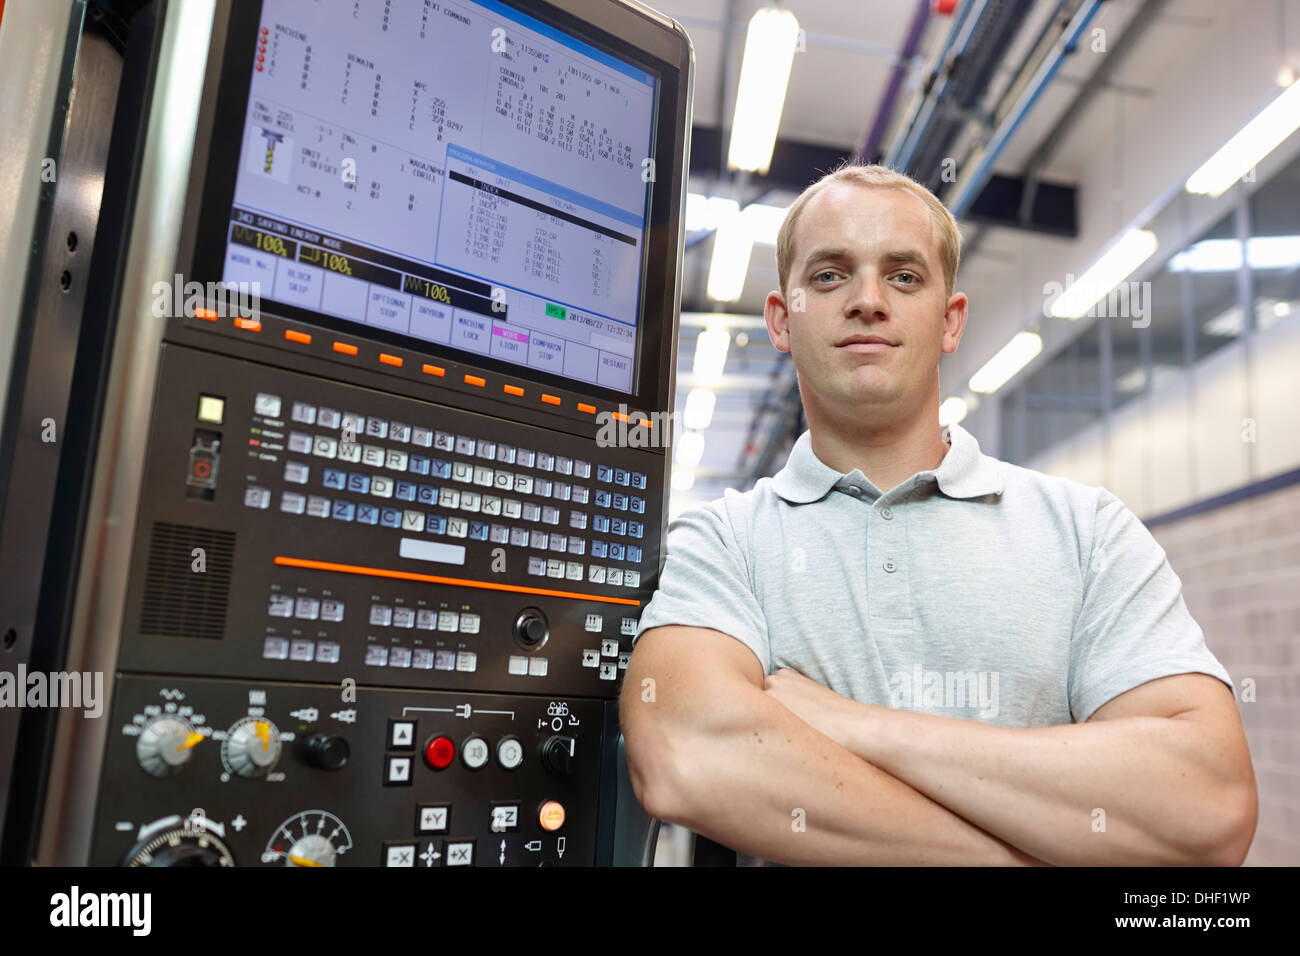 Portrait of engineer and control panel in engineering factory - Stock Image